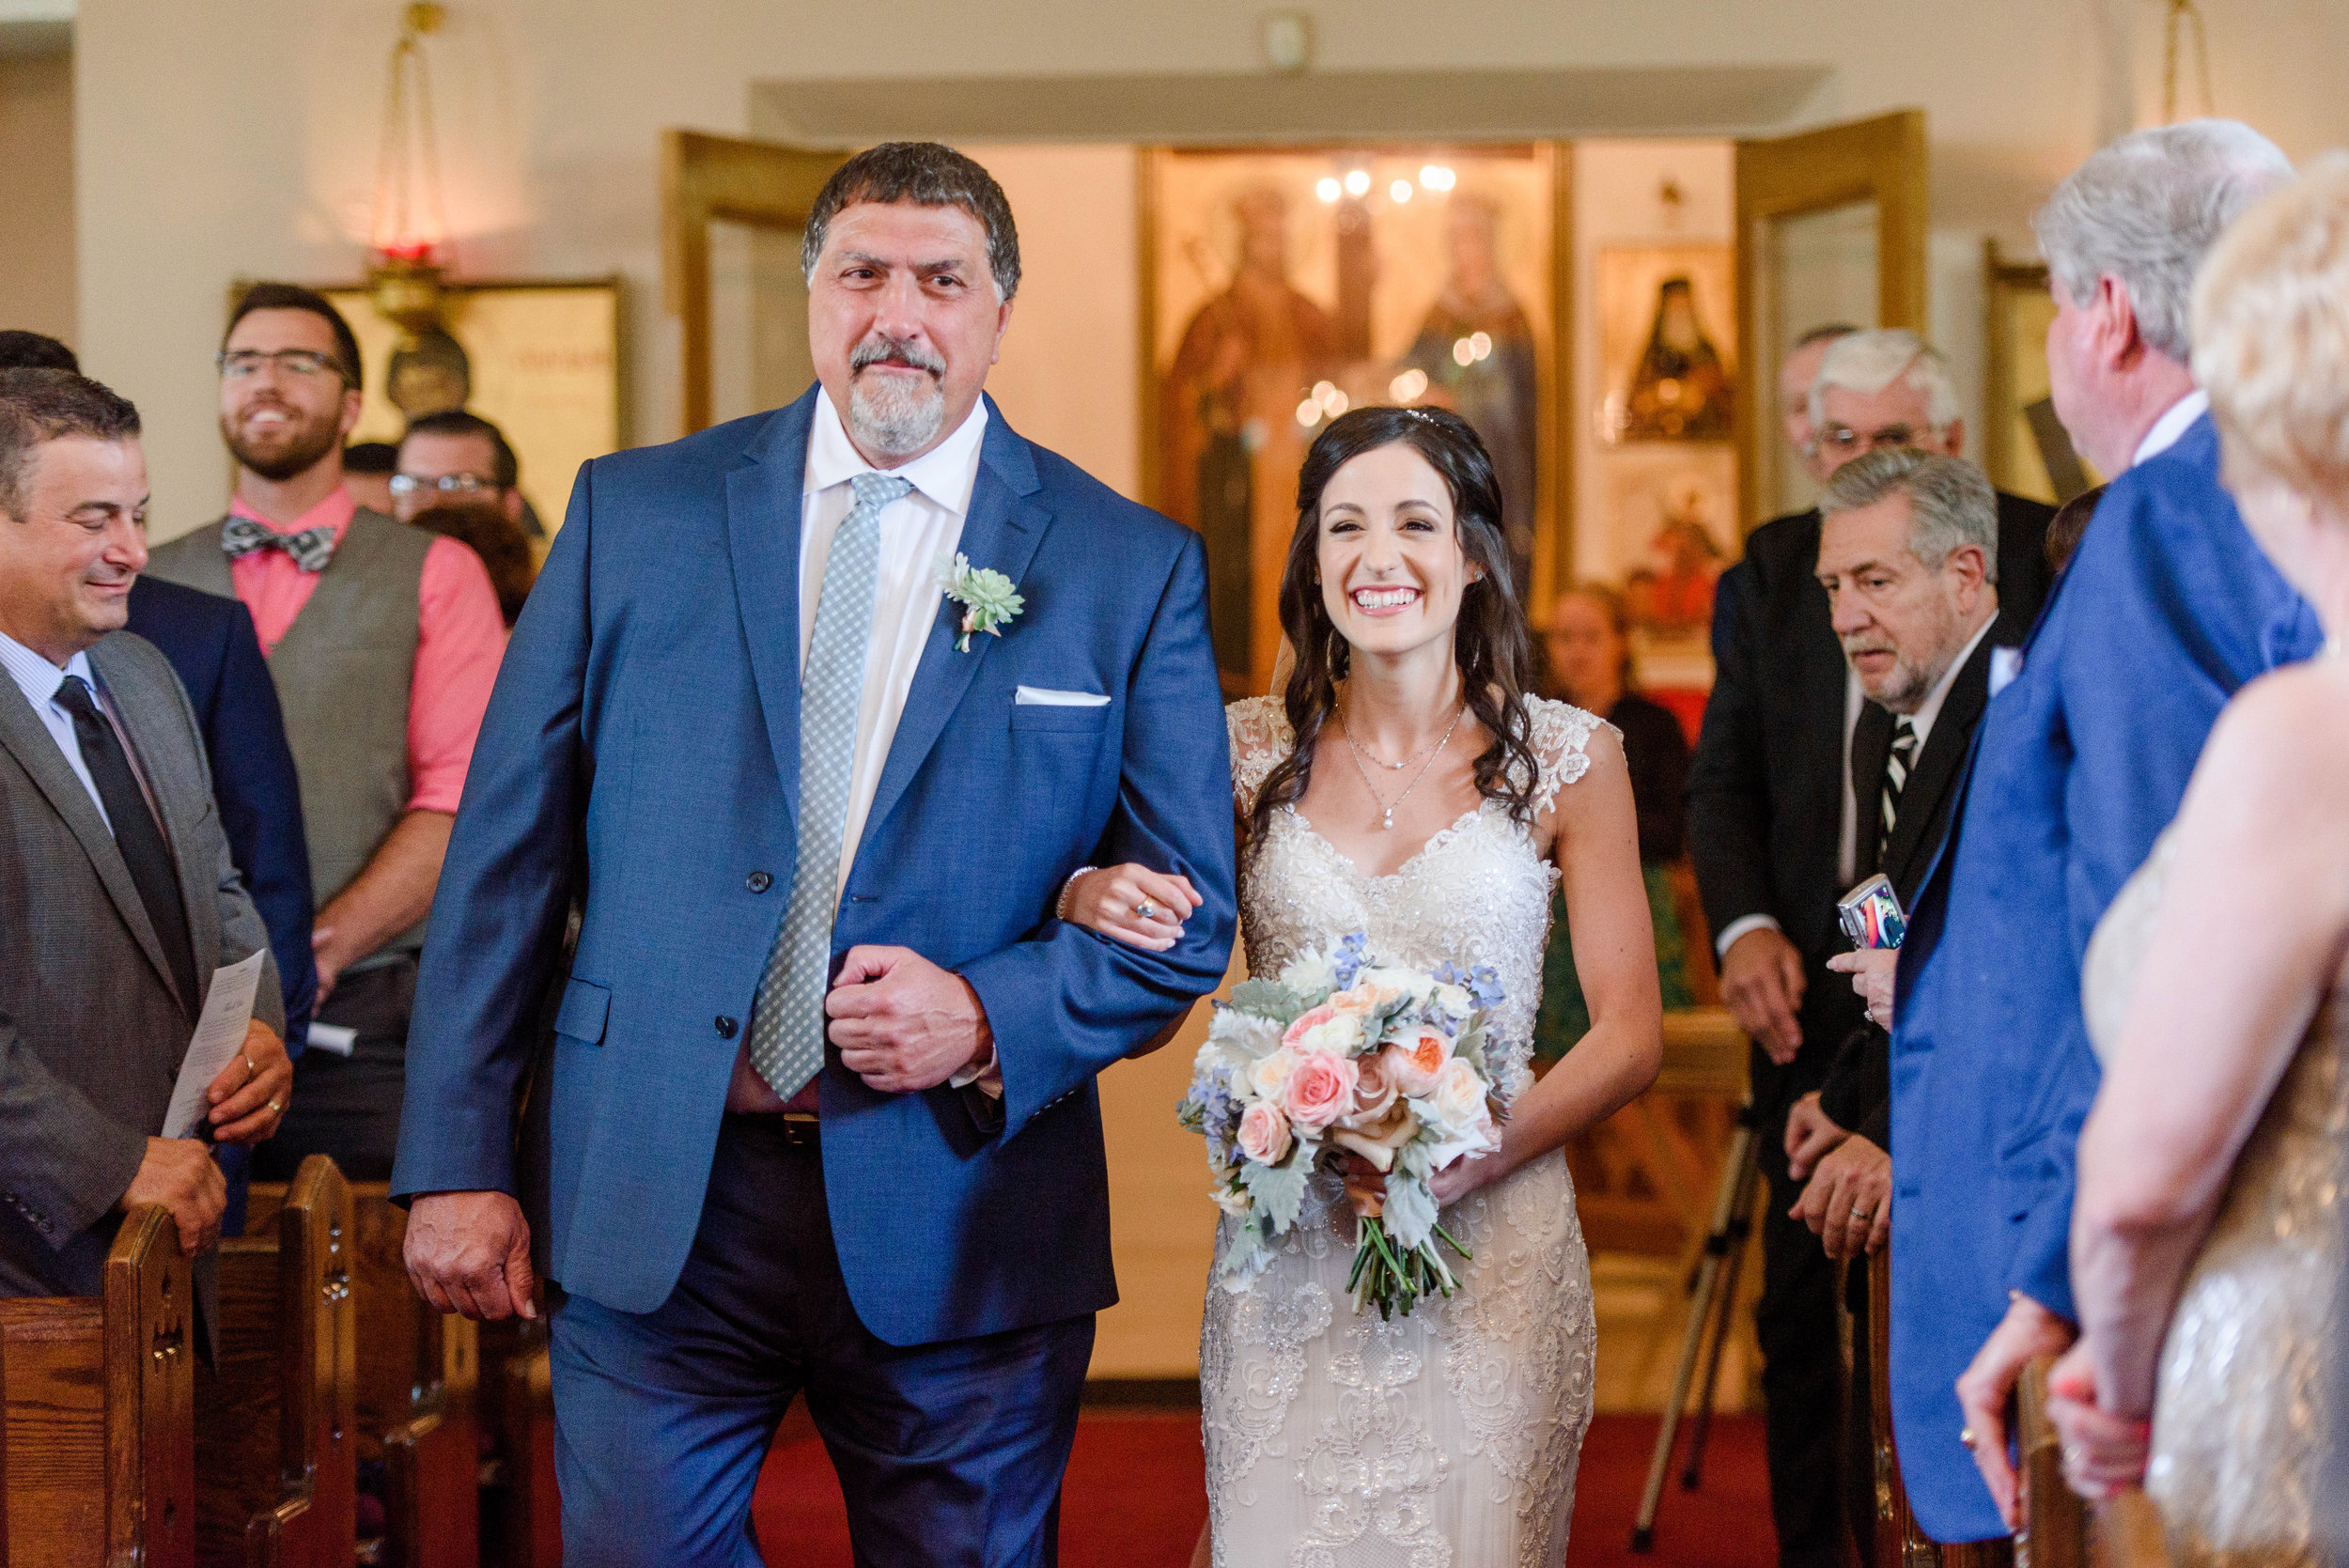 Father escorting bride down the aisle for elegant Greek wedding held in Pittsburgh at Oakmont Country Club. See more details at exhale-events.com!